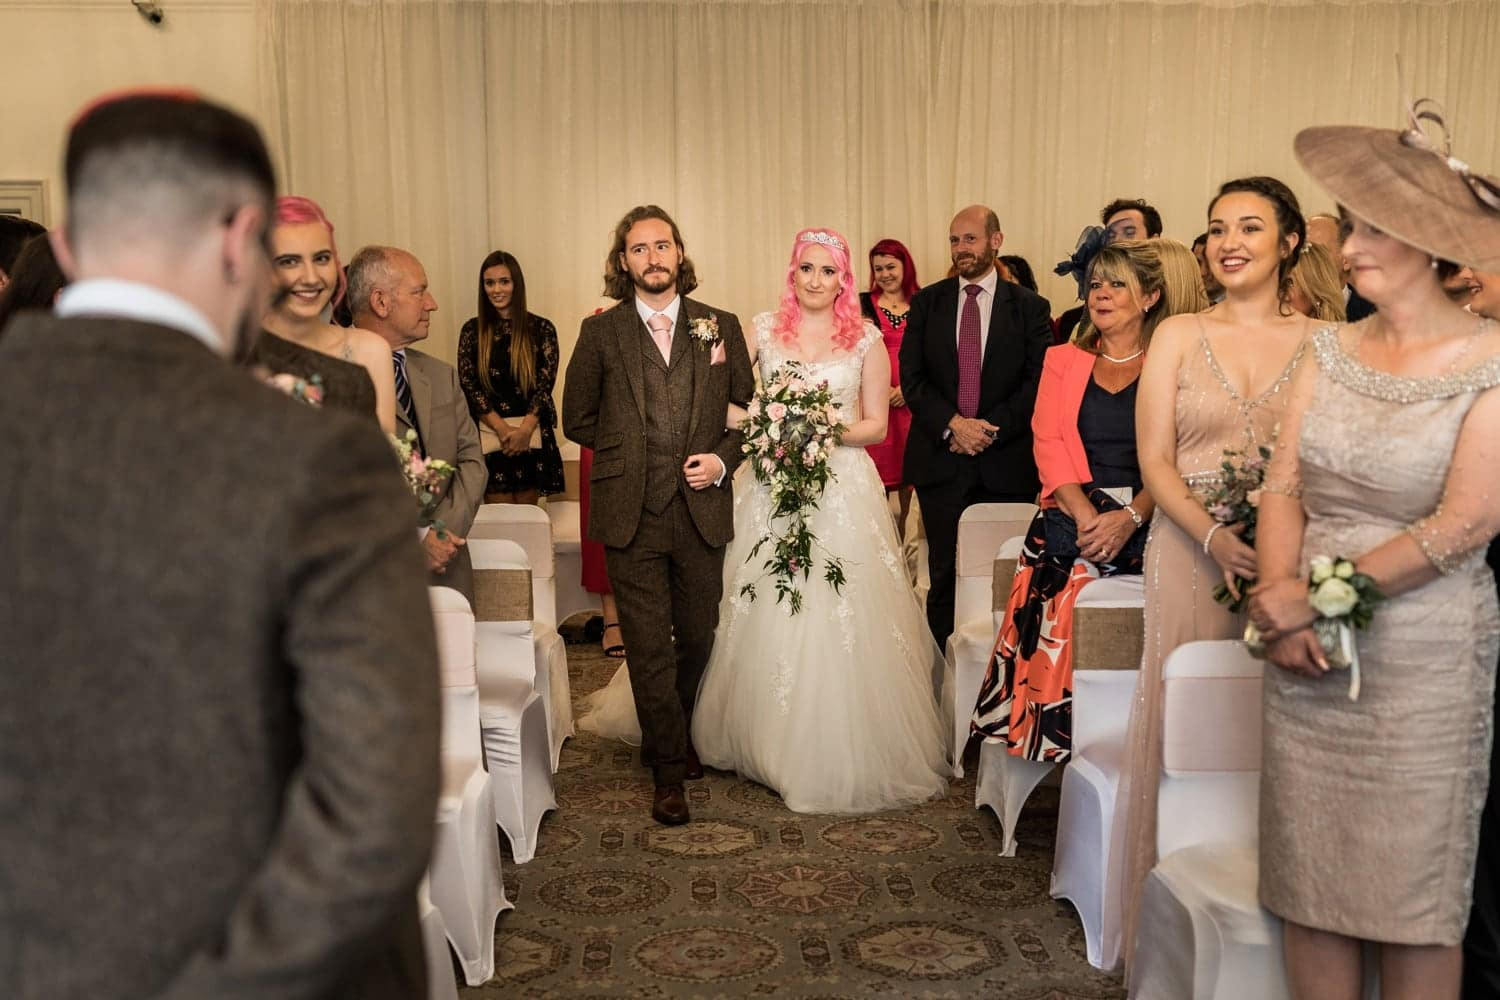 Walking up the aisle at Peterstone Court